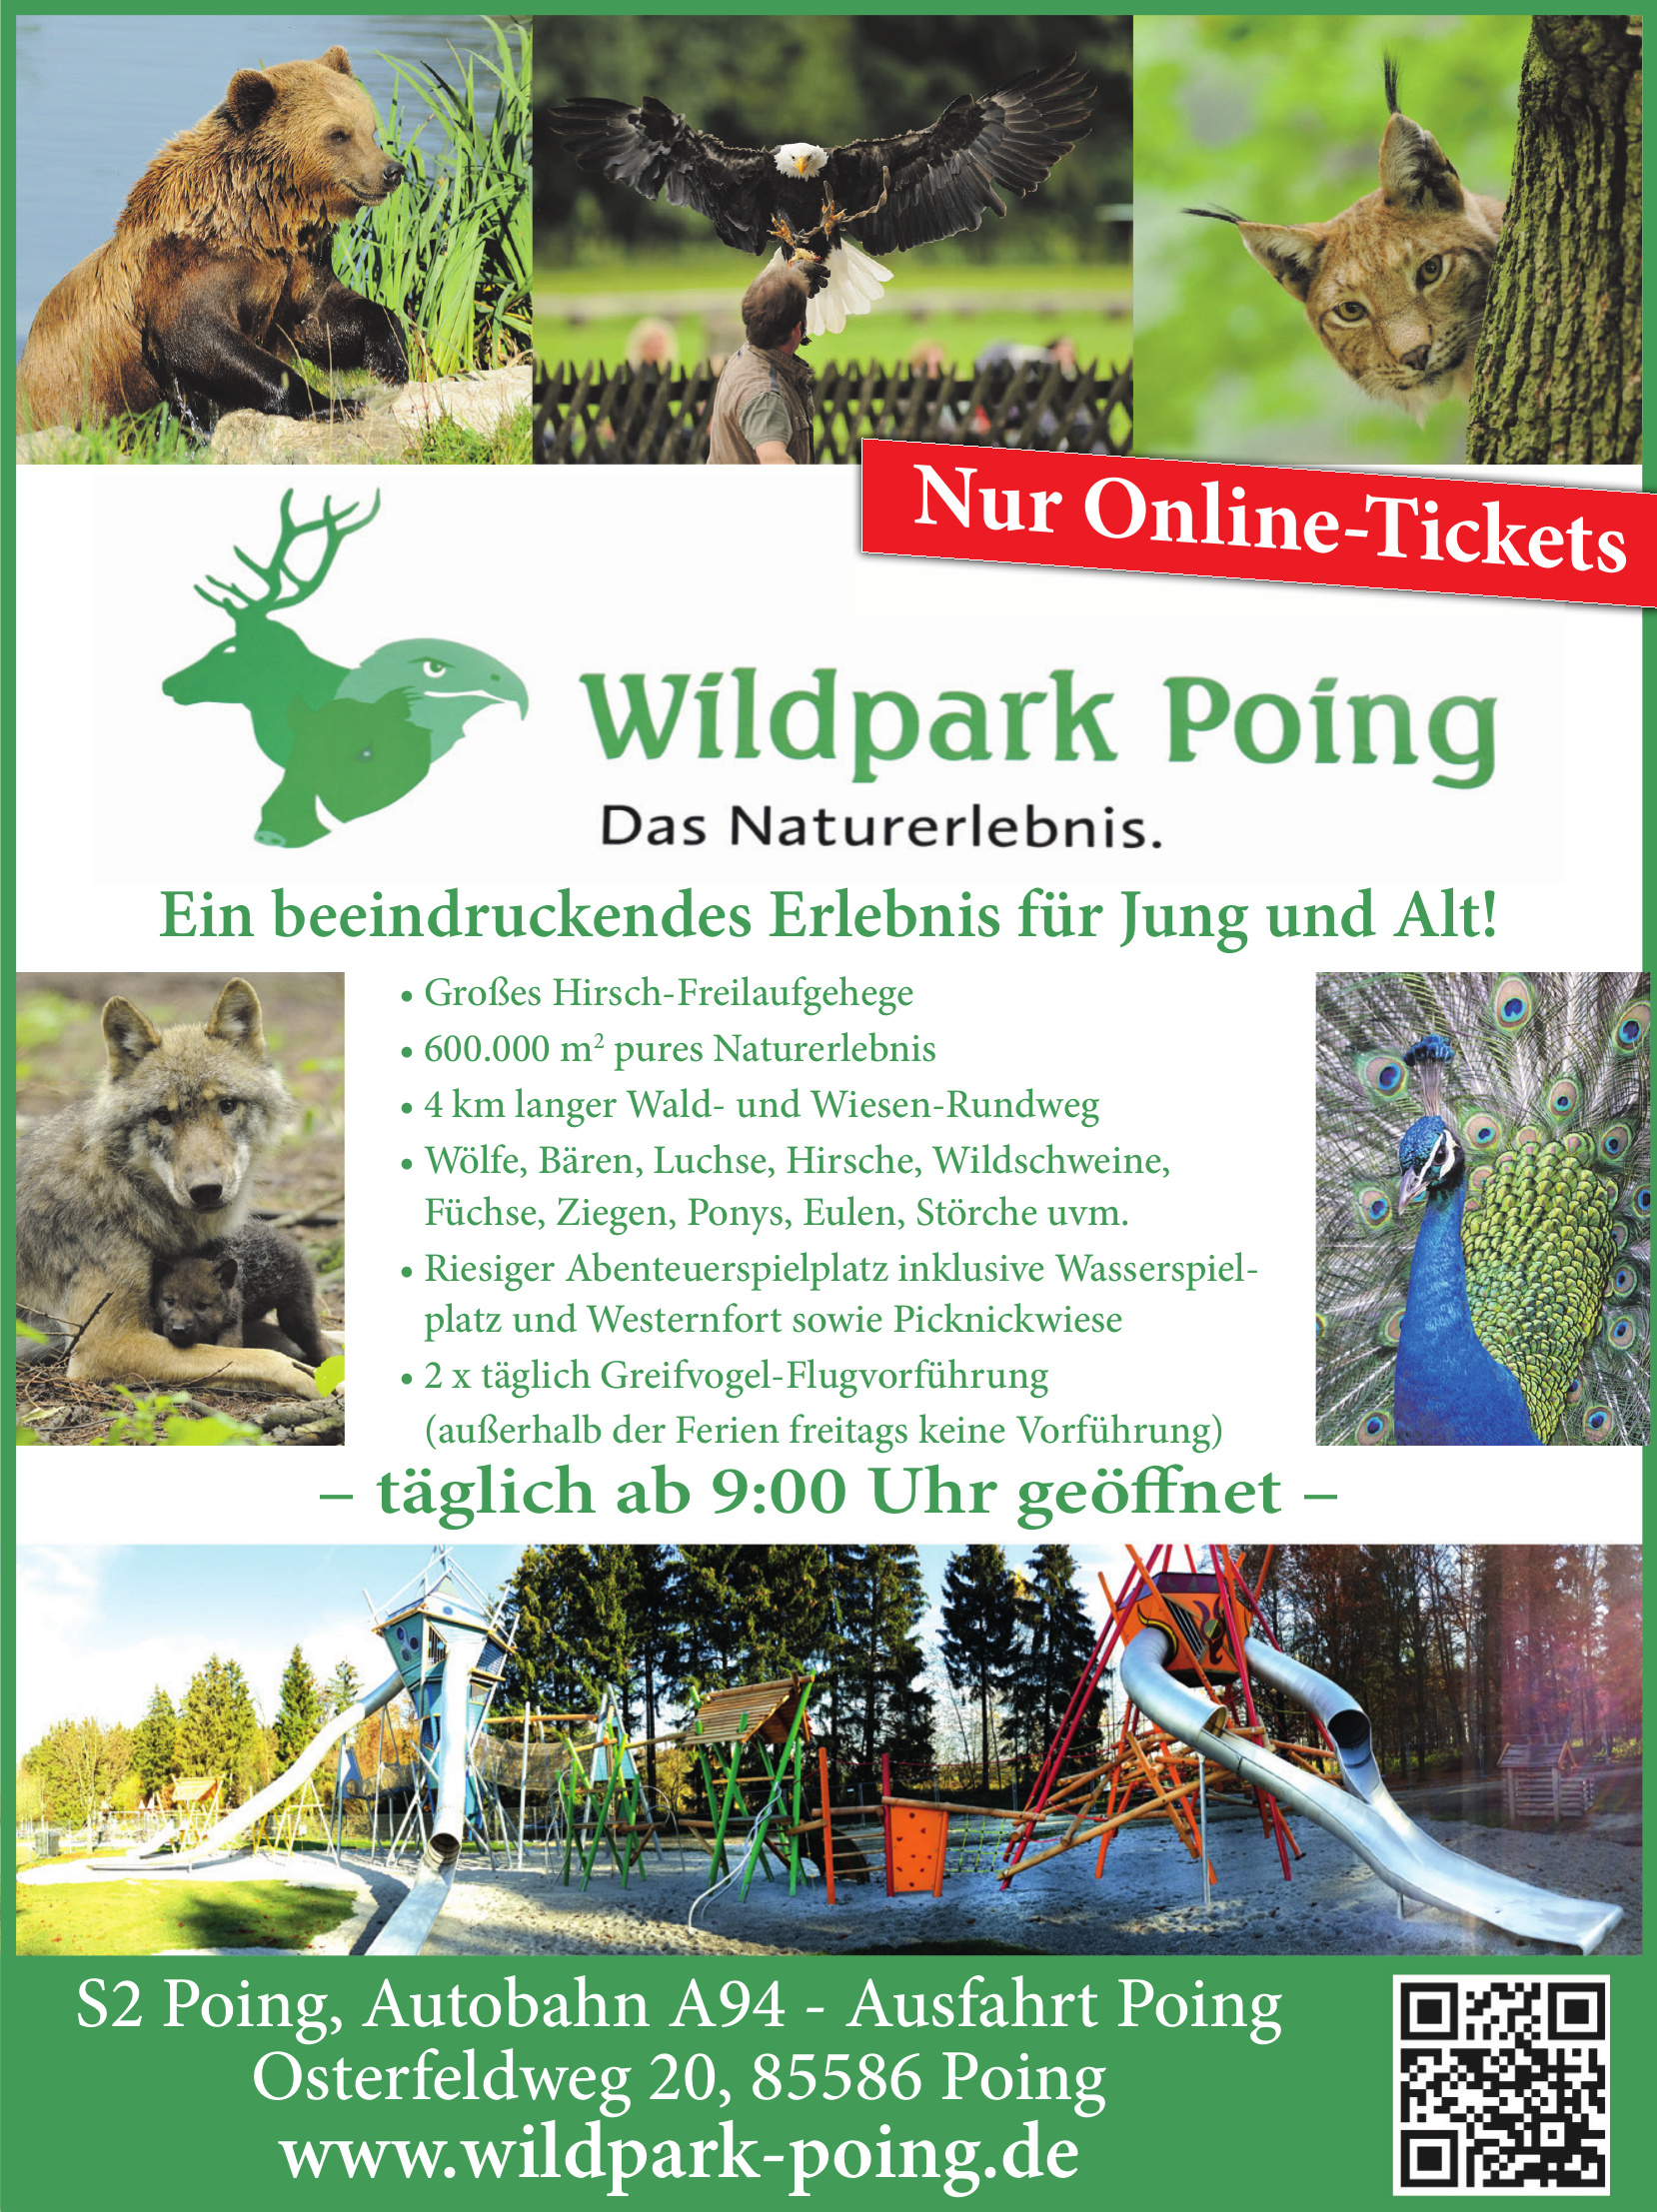 Wildpark Piong